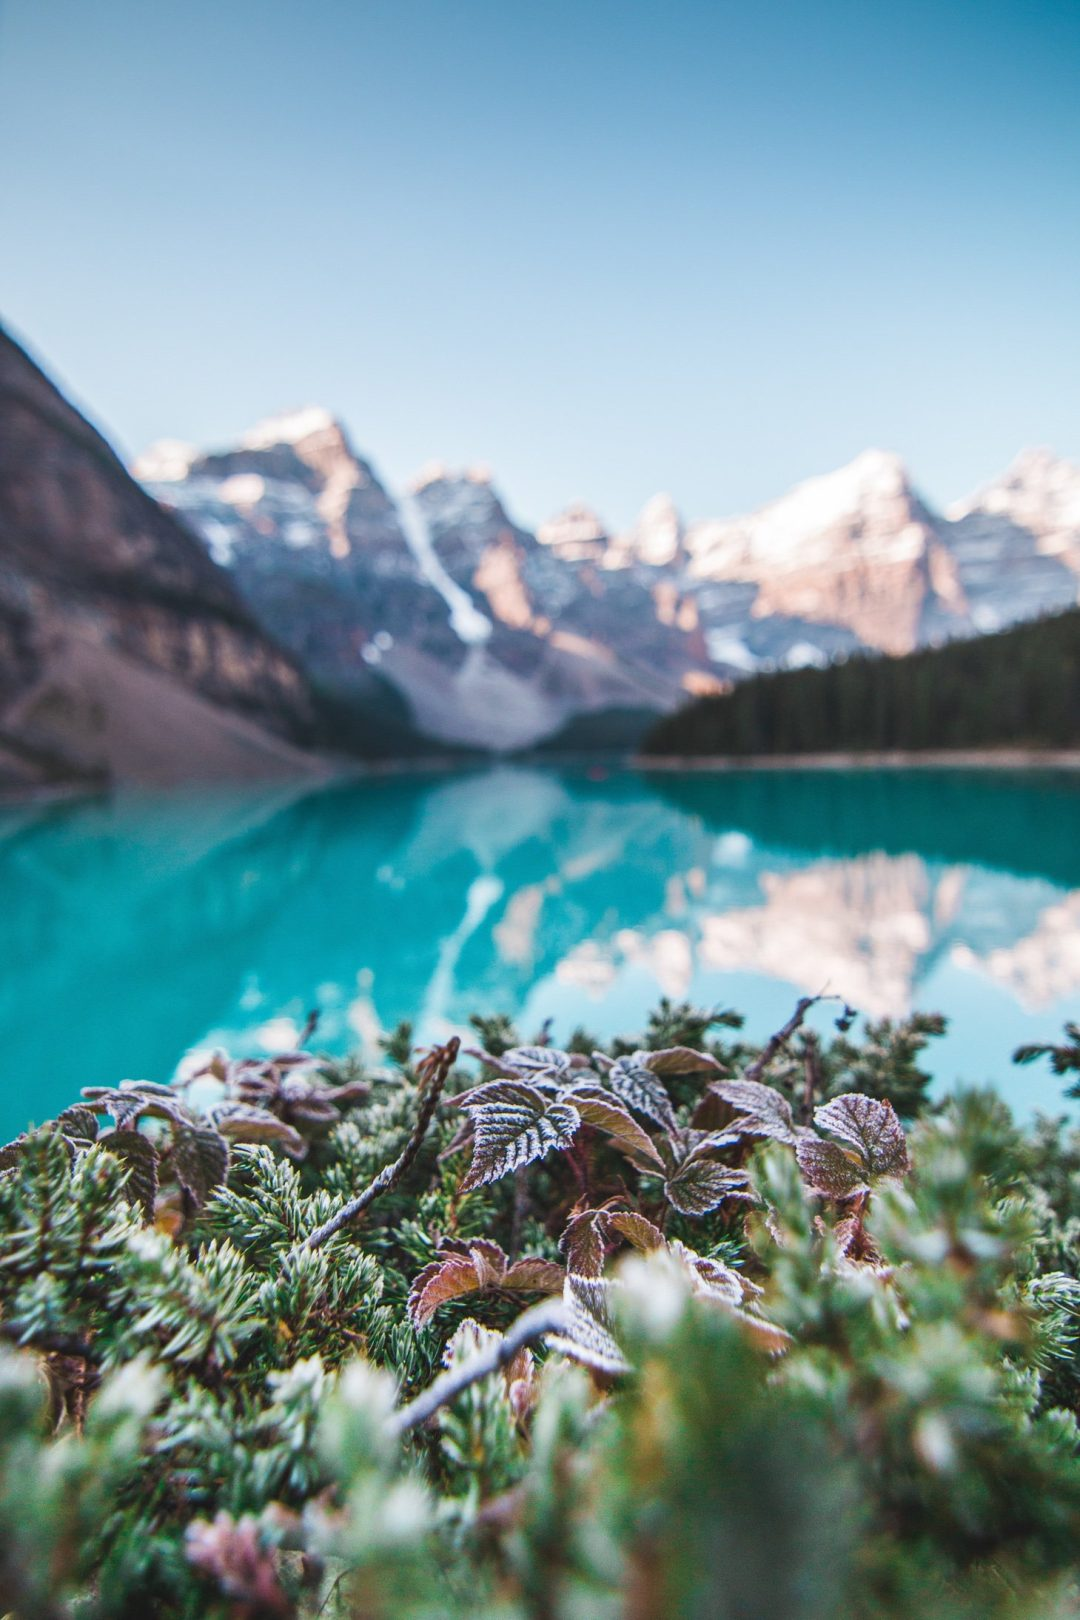 Mountain backgrounds for iPhone with lake and blue sky